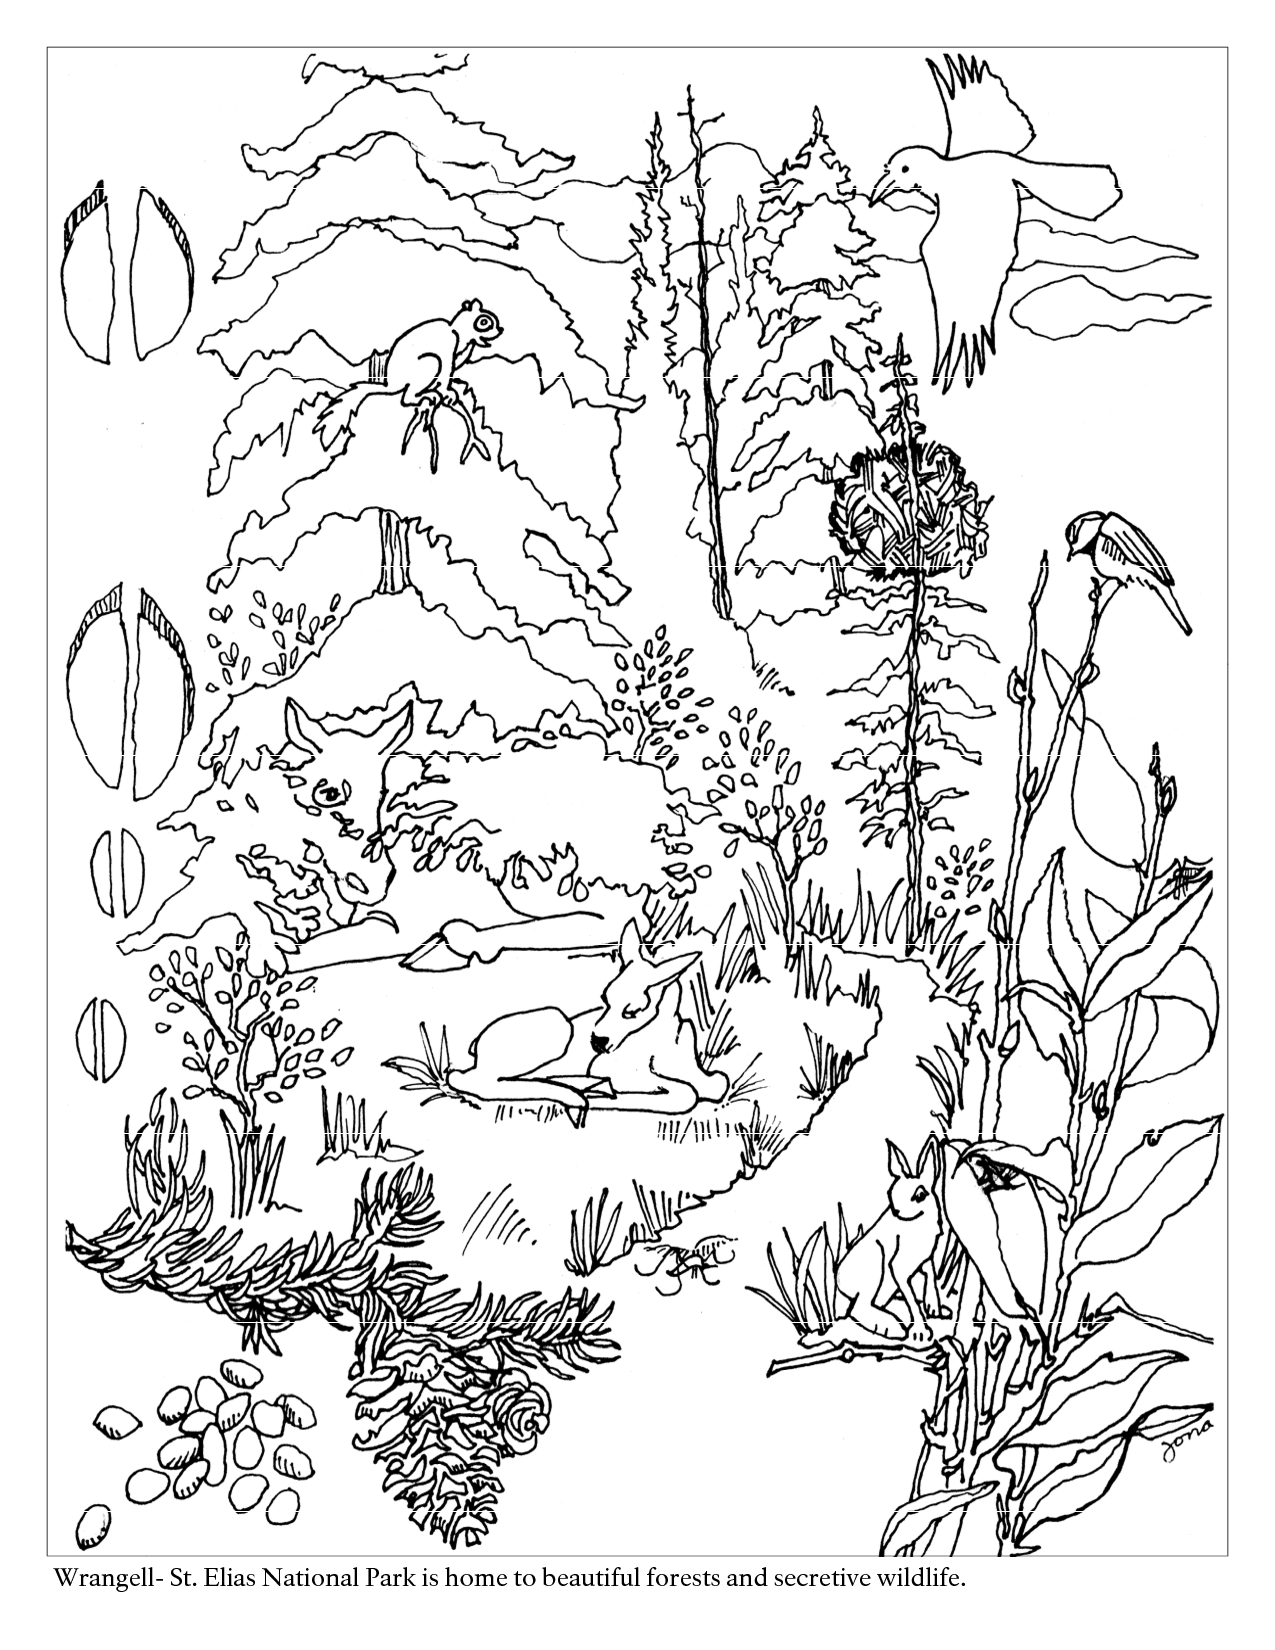 Action Cute Forest Coloring Page Images cute forest coloring pages to download and print for free images